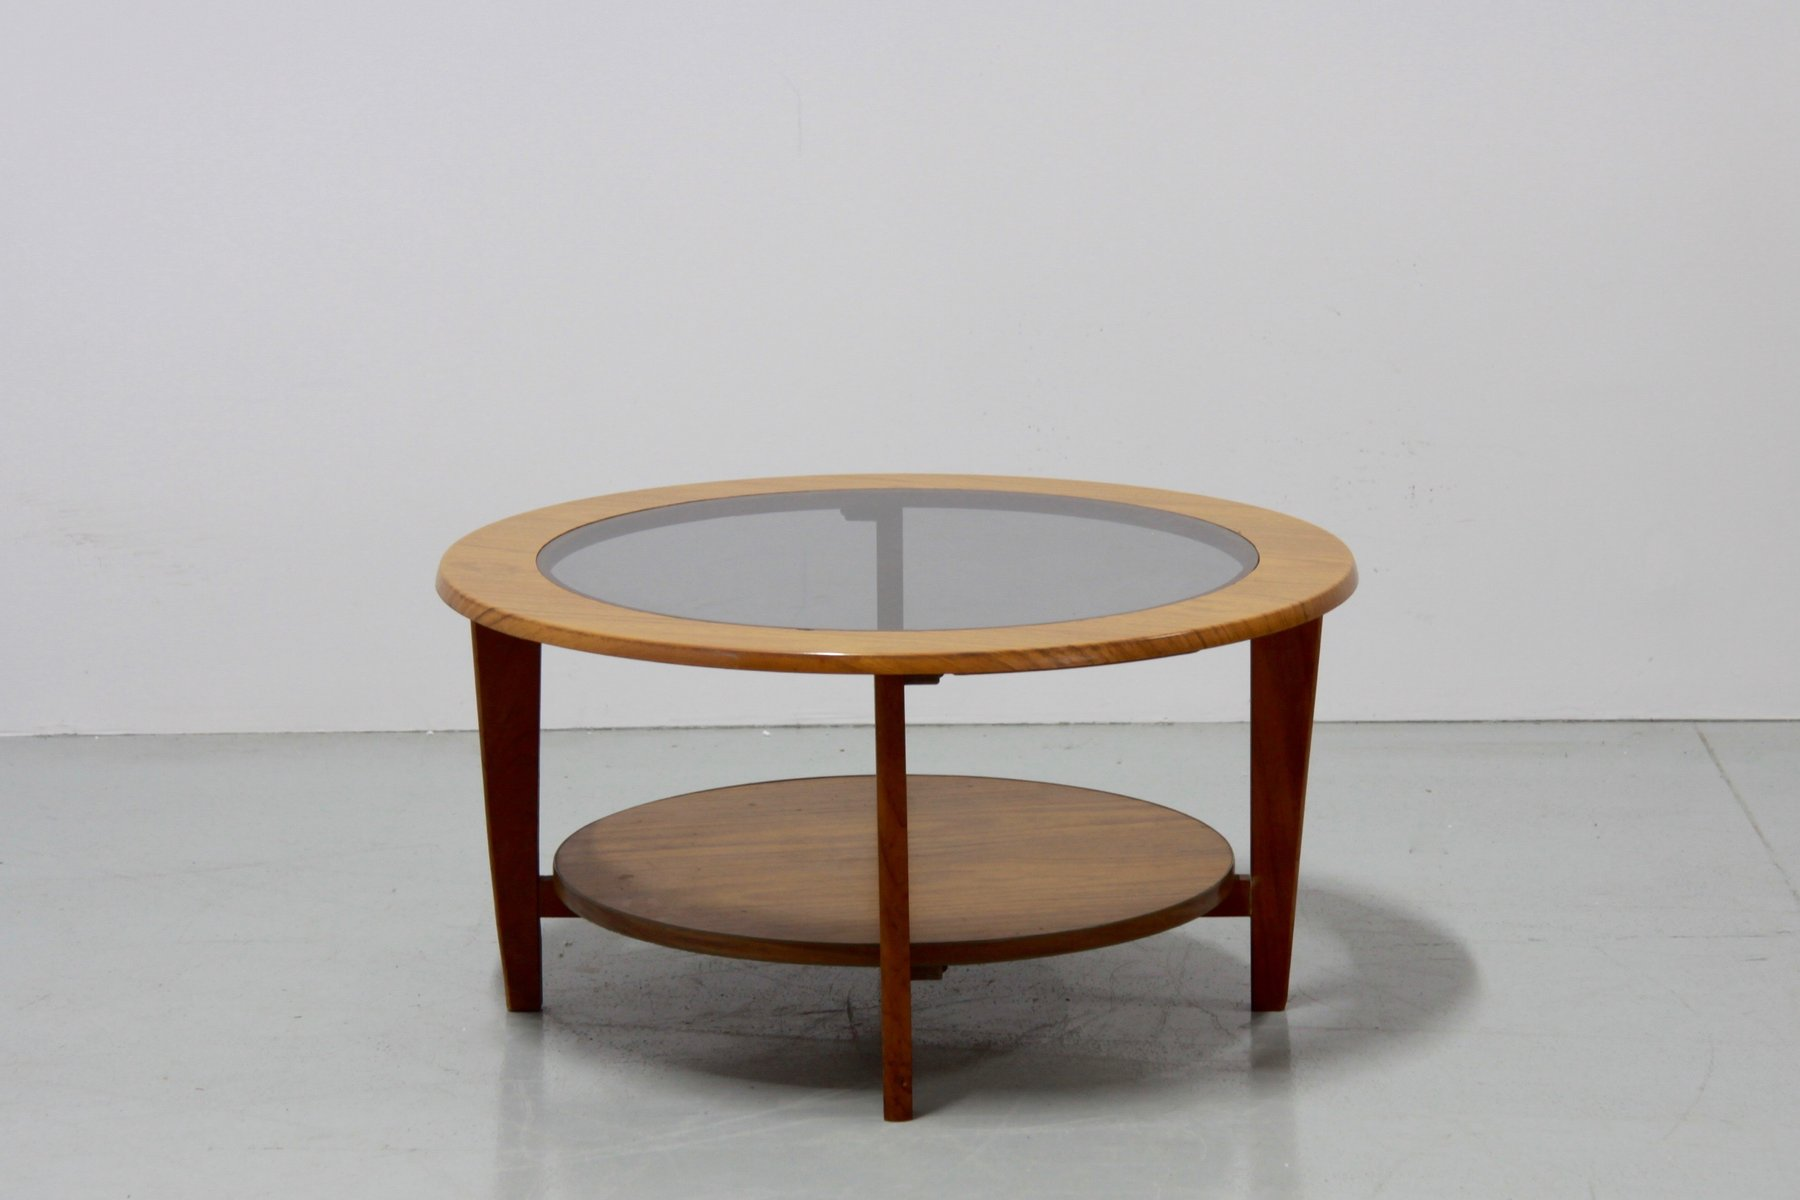 Vintage Danish Round Coffee Table with Glass 1960s for sale at Pamono